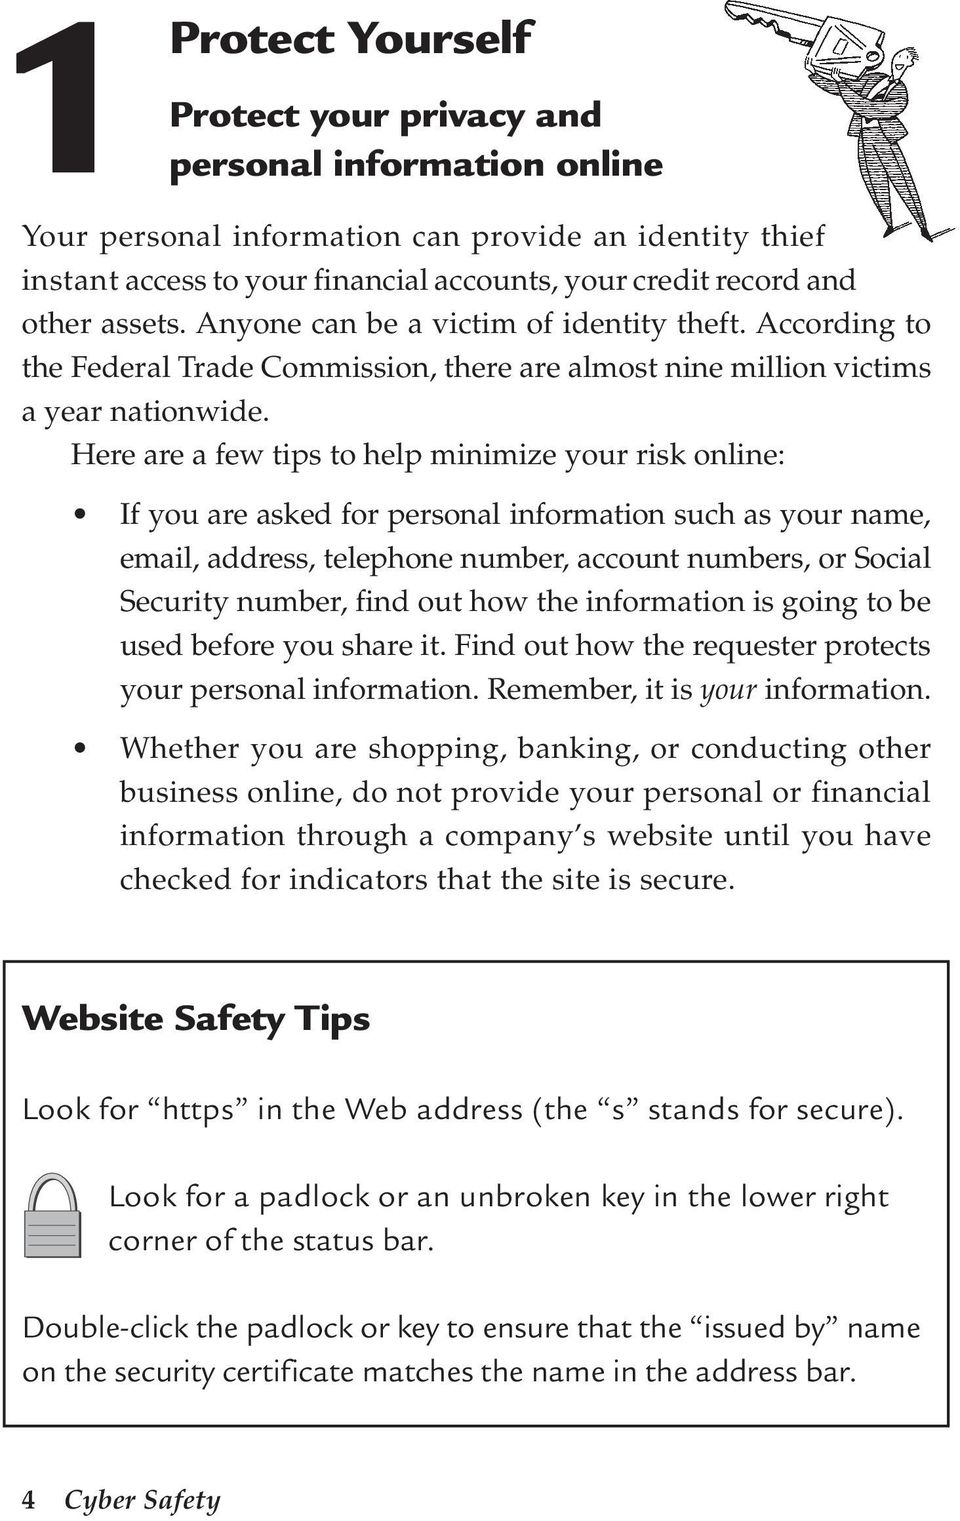 Here are a few tips to help minimize your risk online: If you are asked for personal information such as your name, email, address, telephone number, account numbers, or Social Security number, find